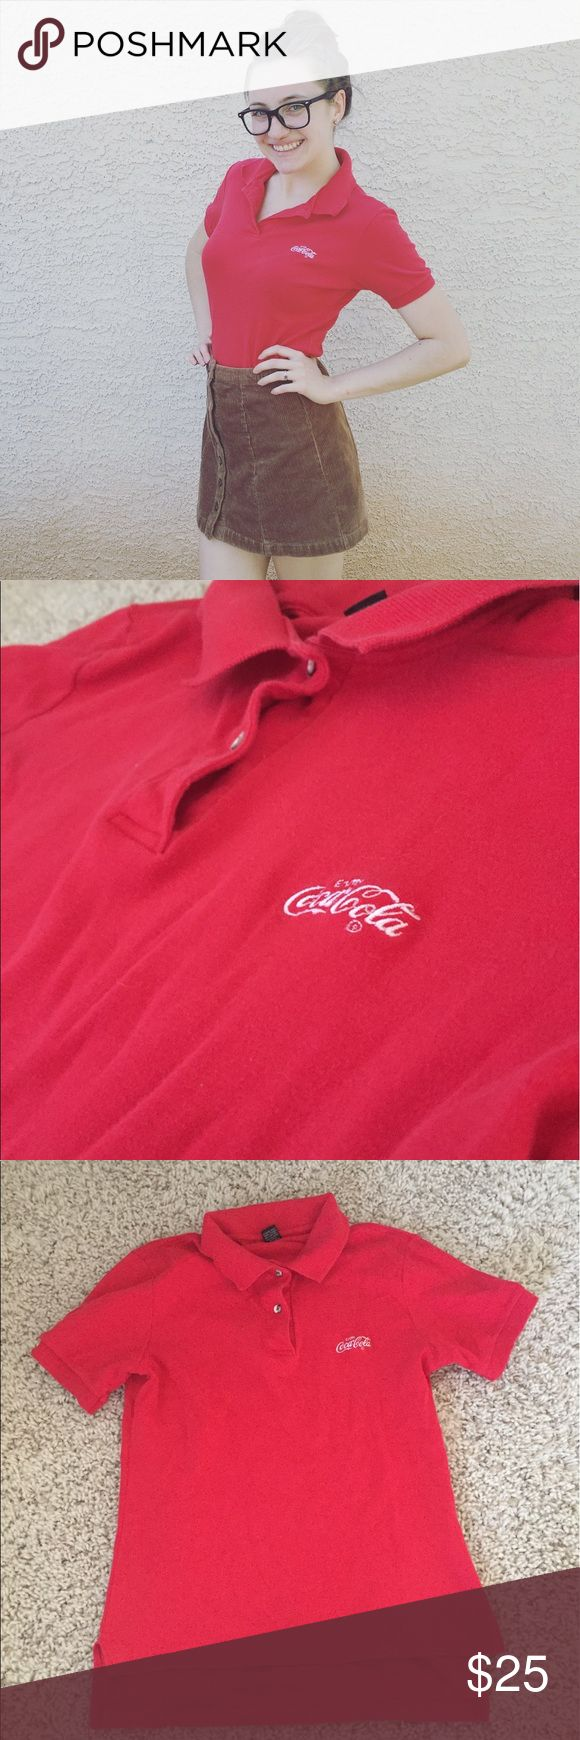 🆕 vintage Coca Cola polo shirt Size says large but fits more like a small or medium. Red Coca Cola polo shirts. Brand is Coca Cola Vintage Tops